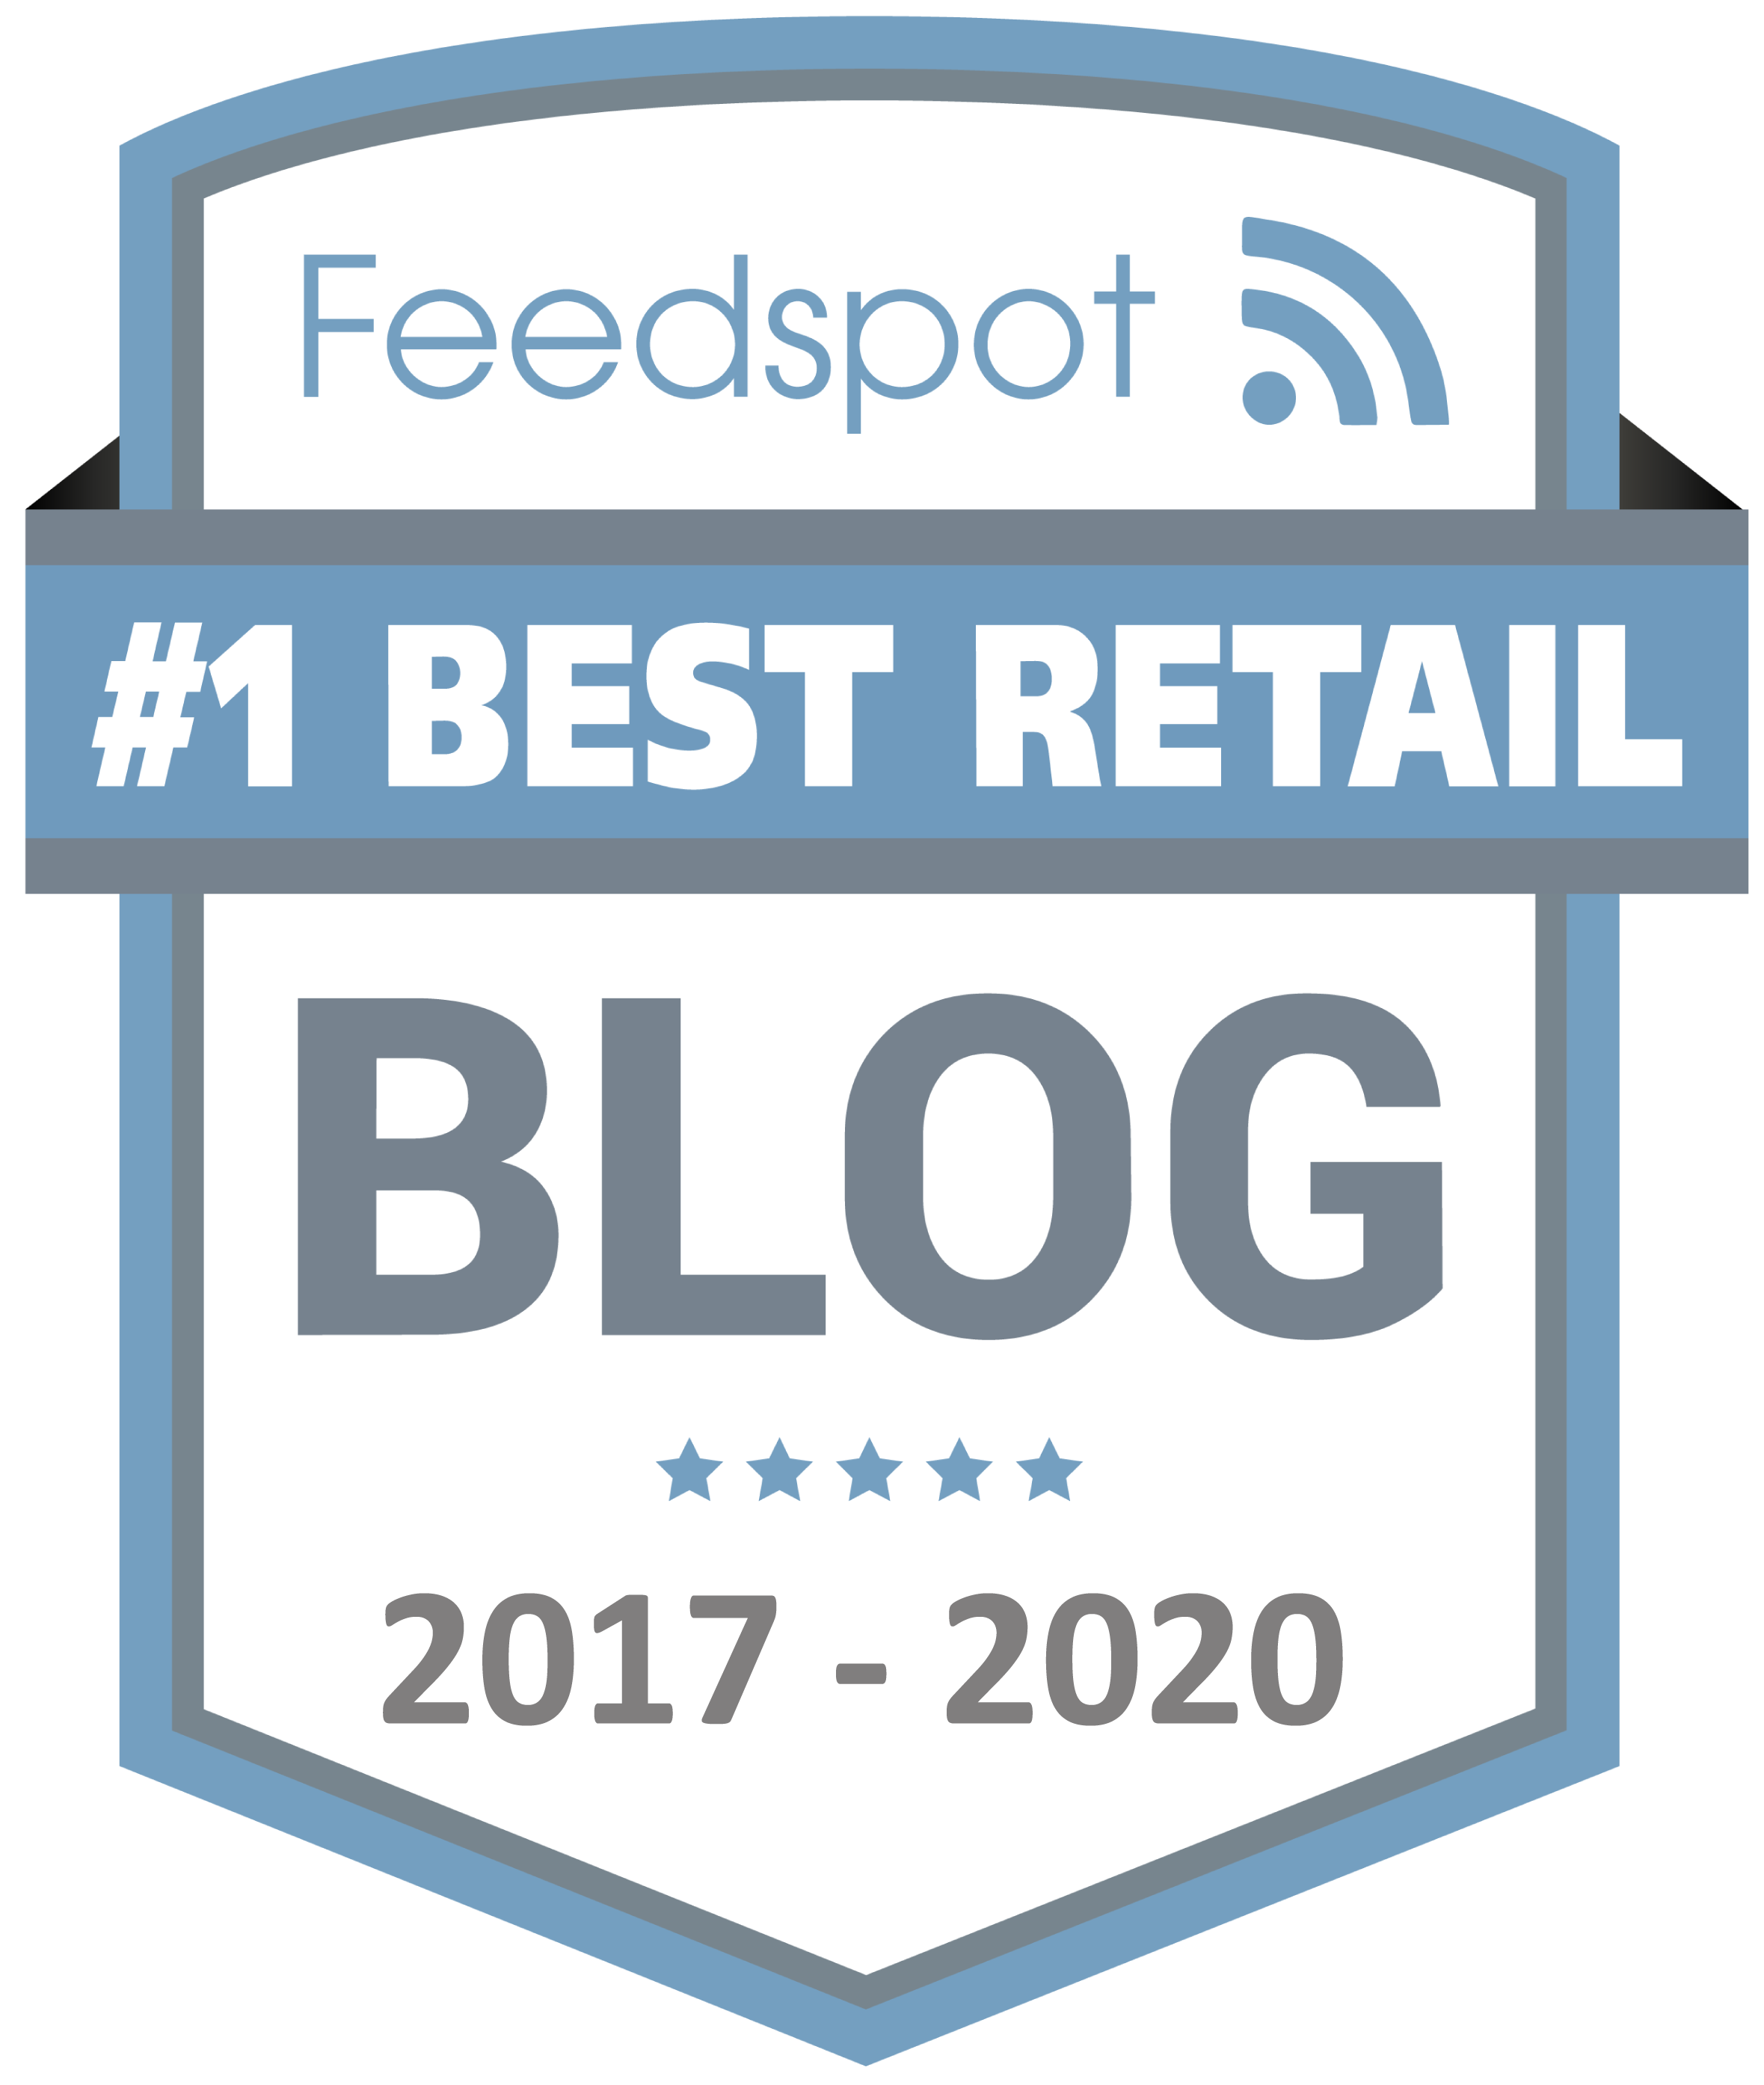 Feedspot's Best Retail Blog & Website Image